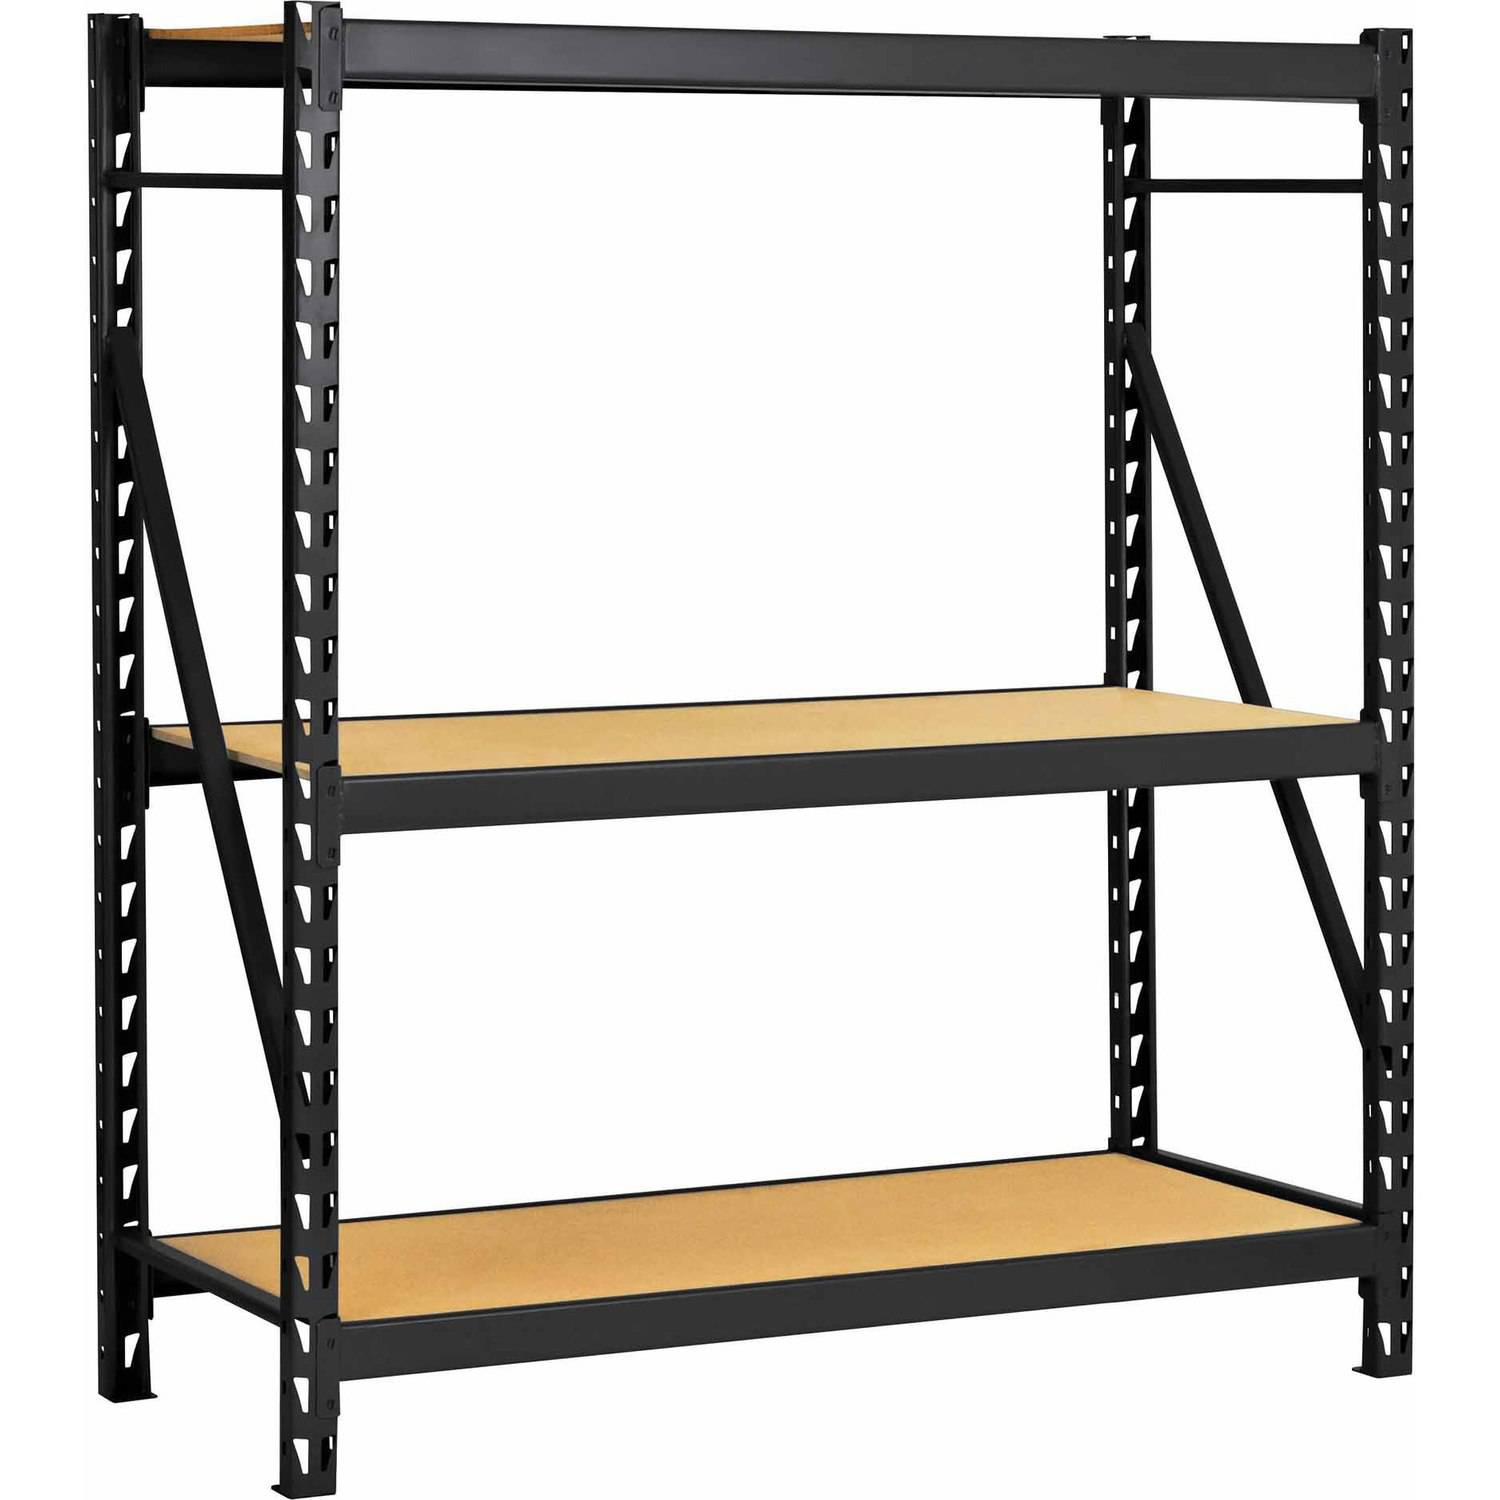 metal storage rack edsal welded steel rack black erz601866pb3 walmart 23294